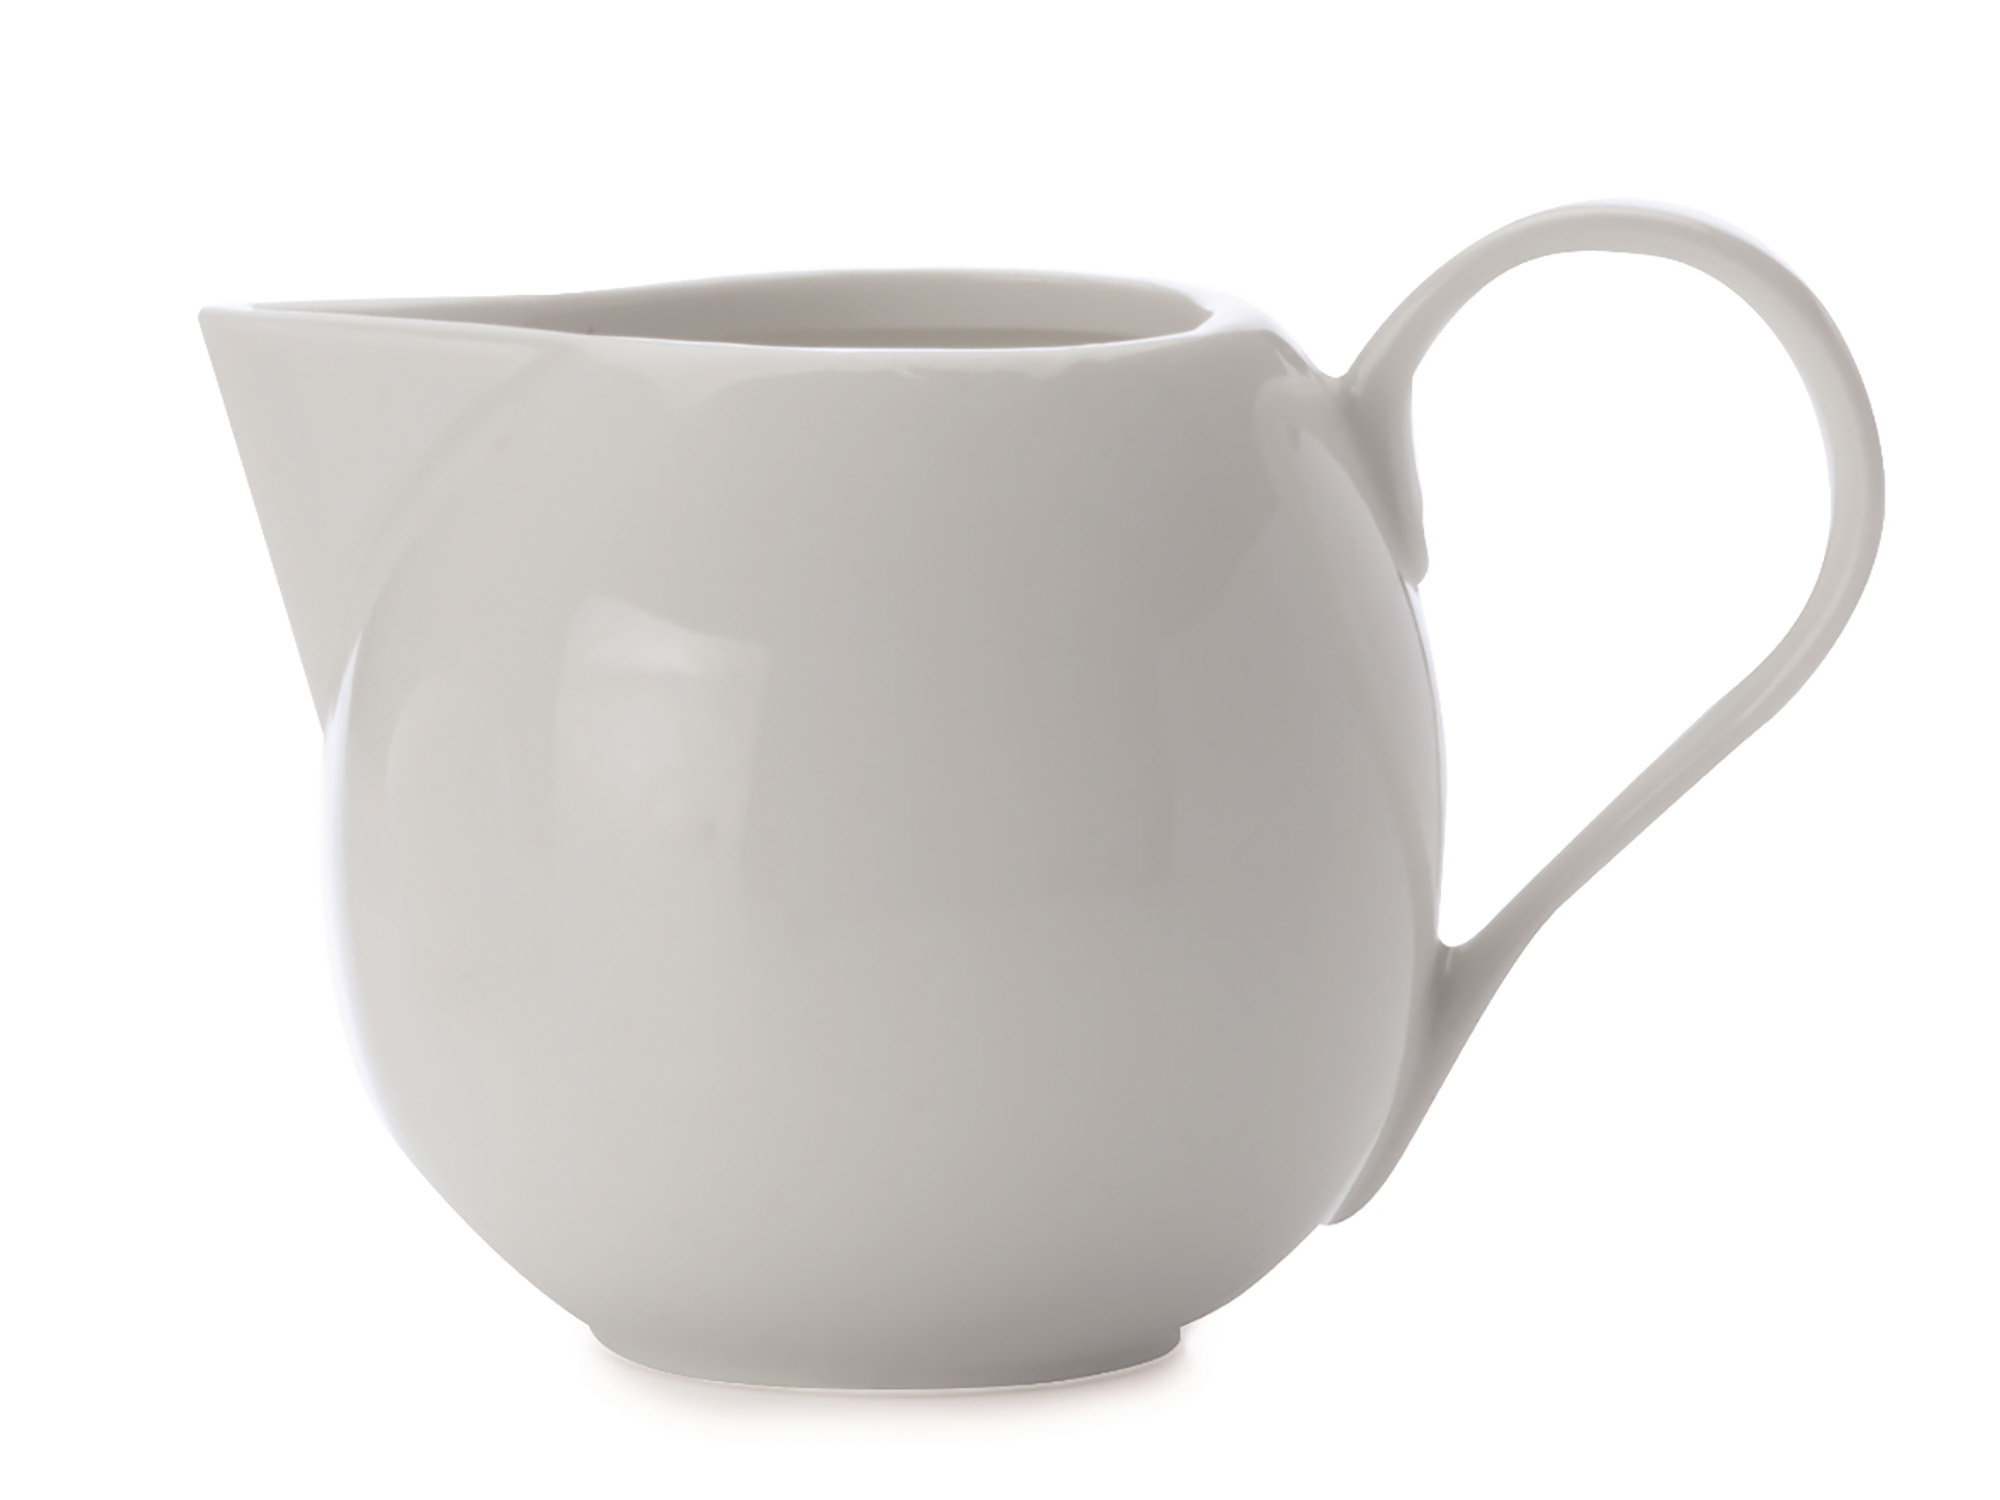 Maxwell & Williams White Basics Round Creamer